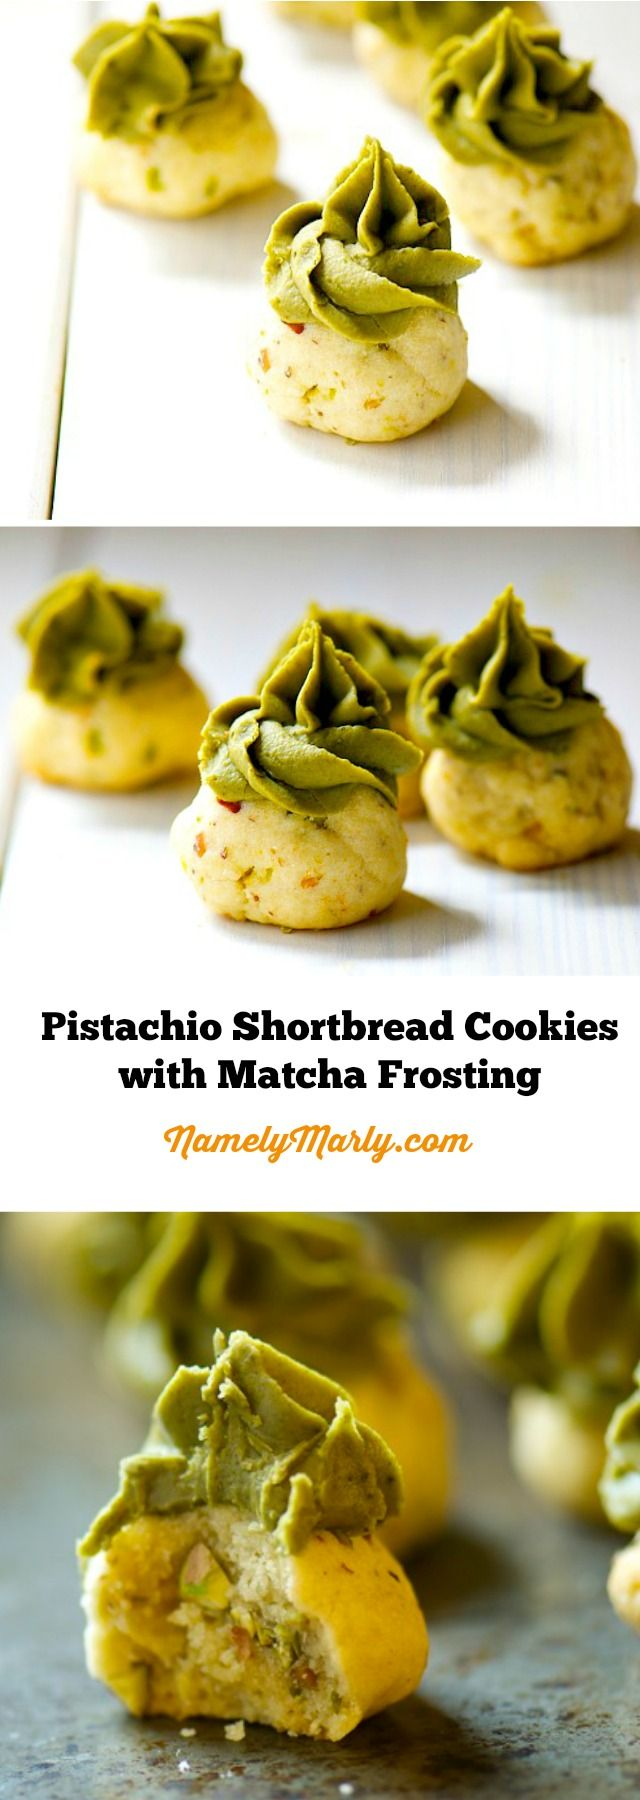 Pistachio Shortbread Cookies with Matcha Green Tea Frosting. Do you want to stand out from the fall pumpkin recipes? This should do it!